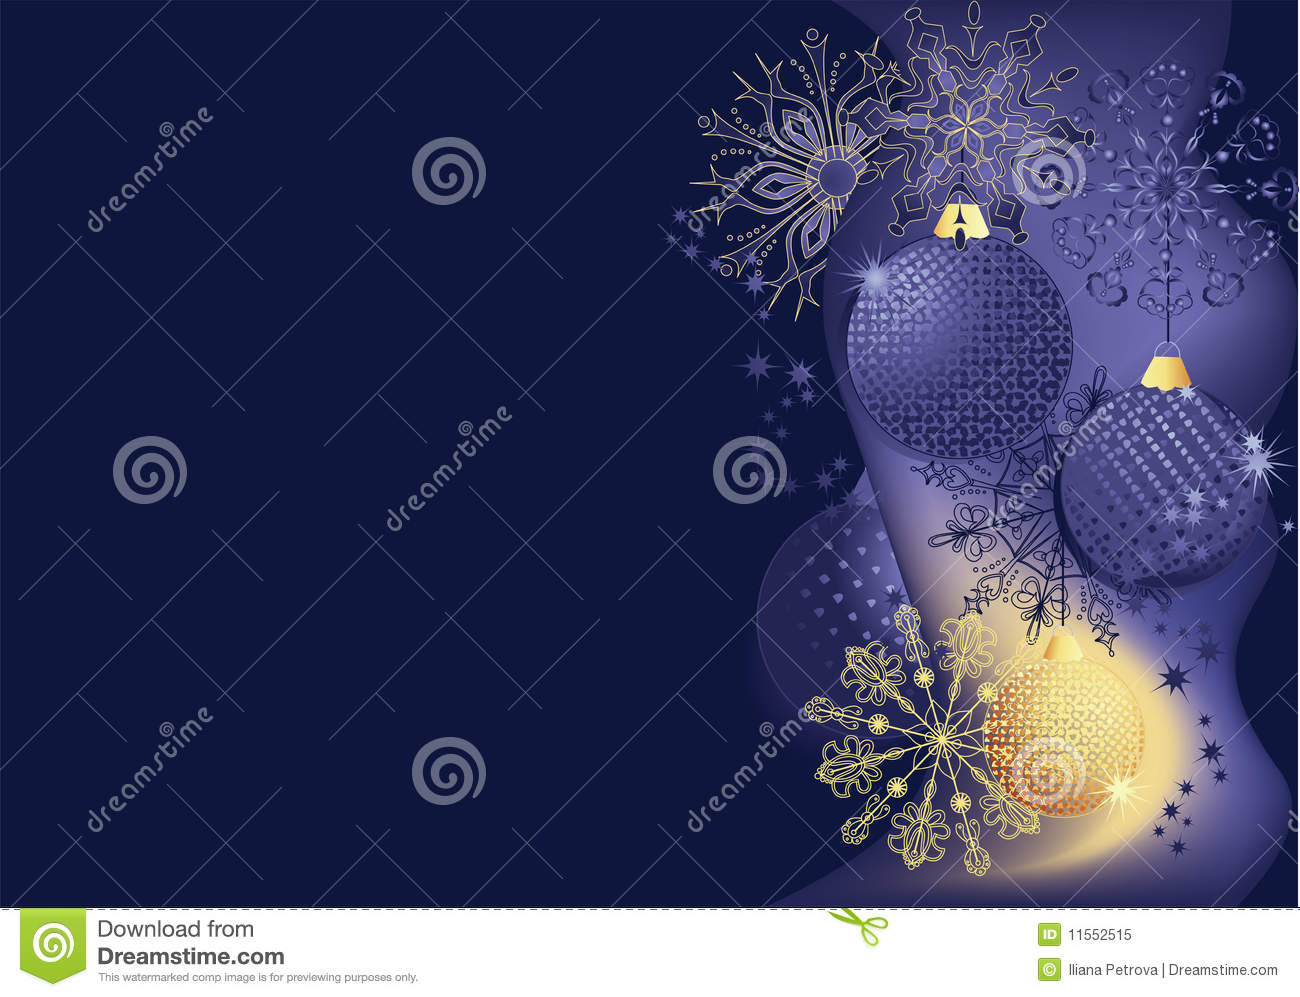 Blue and gold christmas background stock vector image for Blue and gold christmas